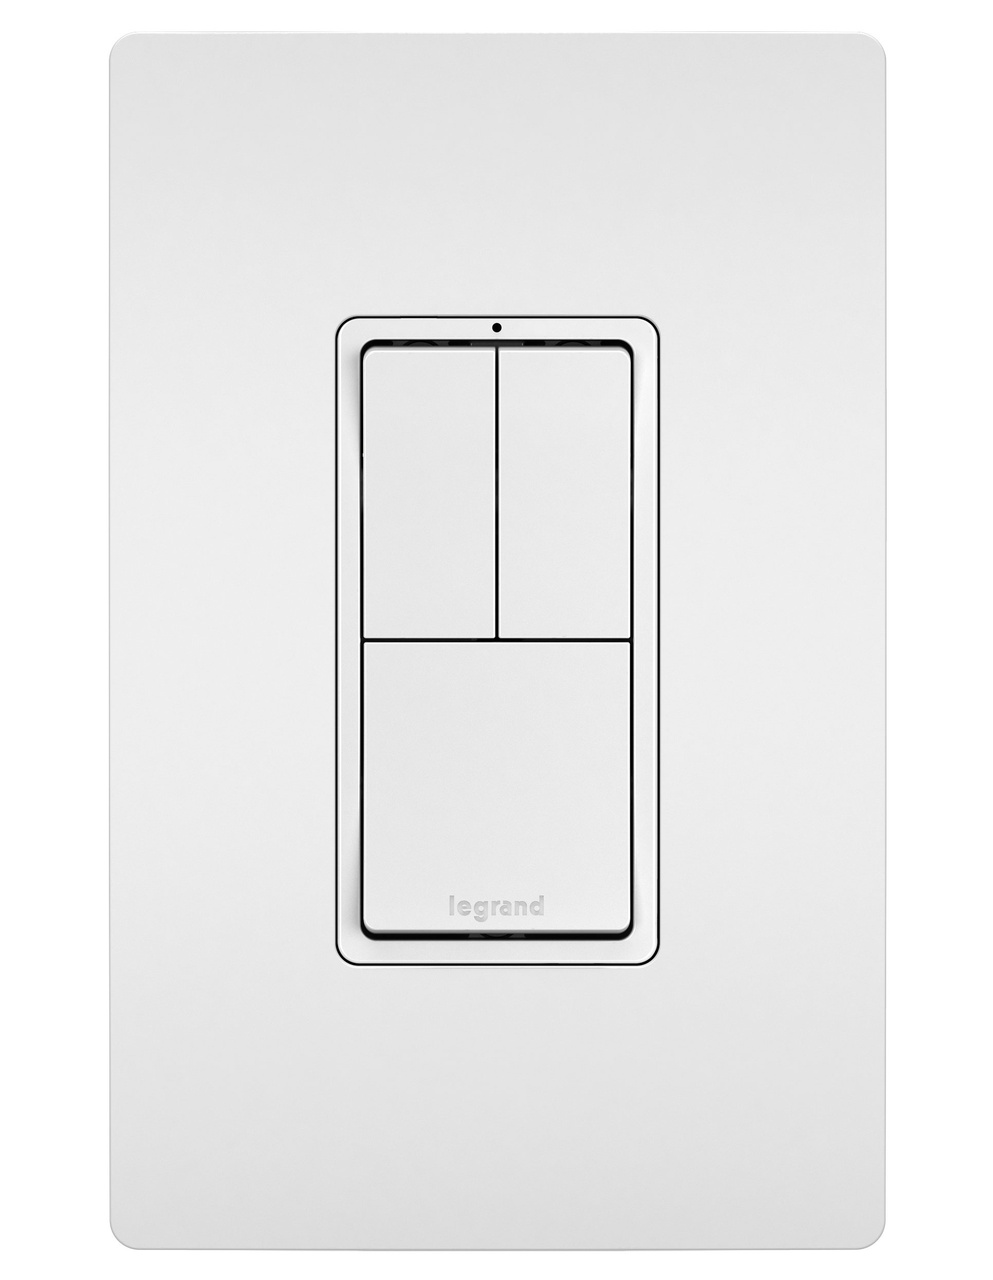 radiant® rcd11w combo switch white legrand two single pole switches single pole 3 way switch white